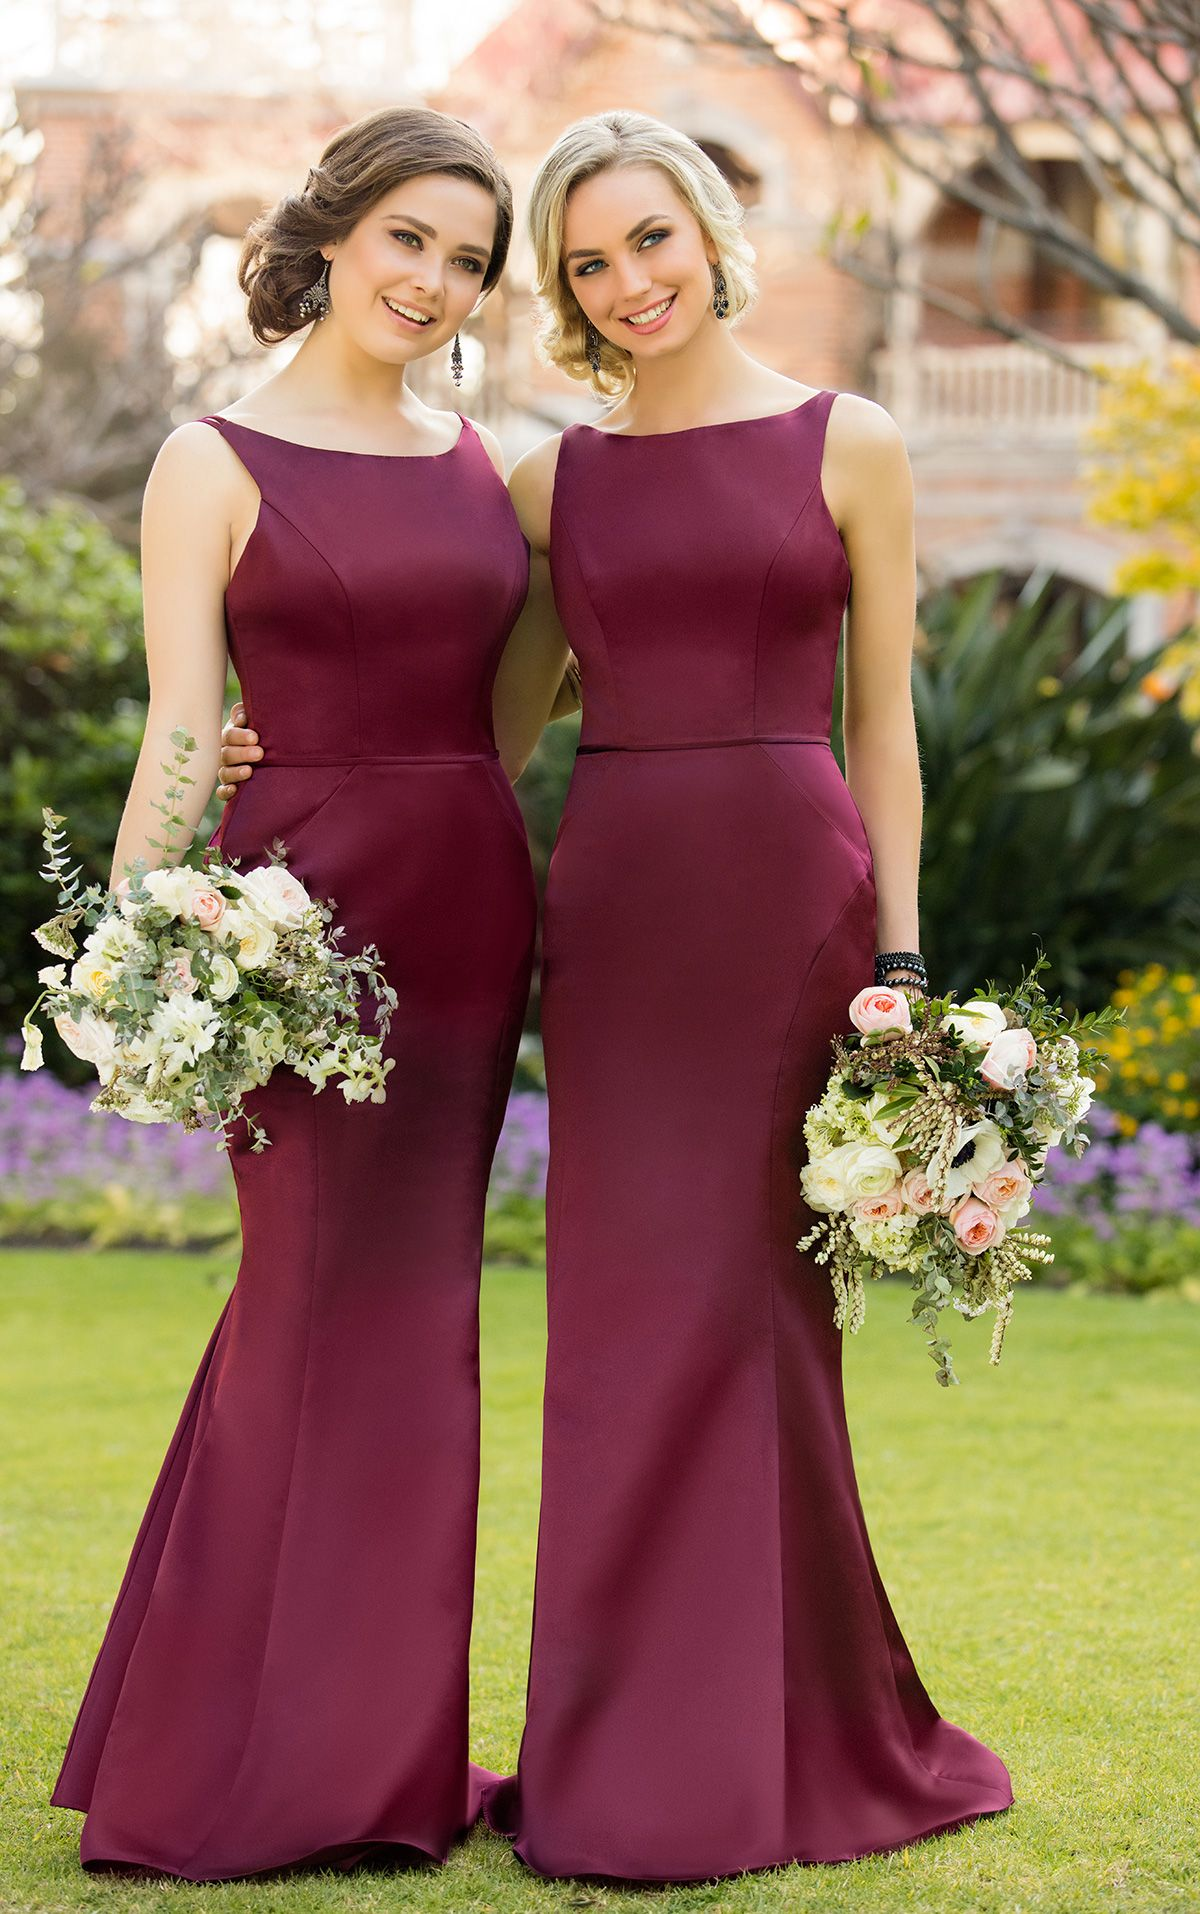 Gorgeous dress for wedding party  Bridesmaid GownBridesmaid DressBridesmaid Gowns Gorgeous